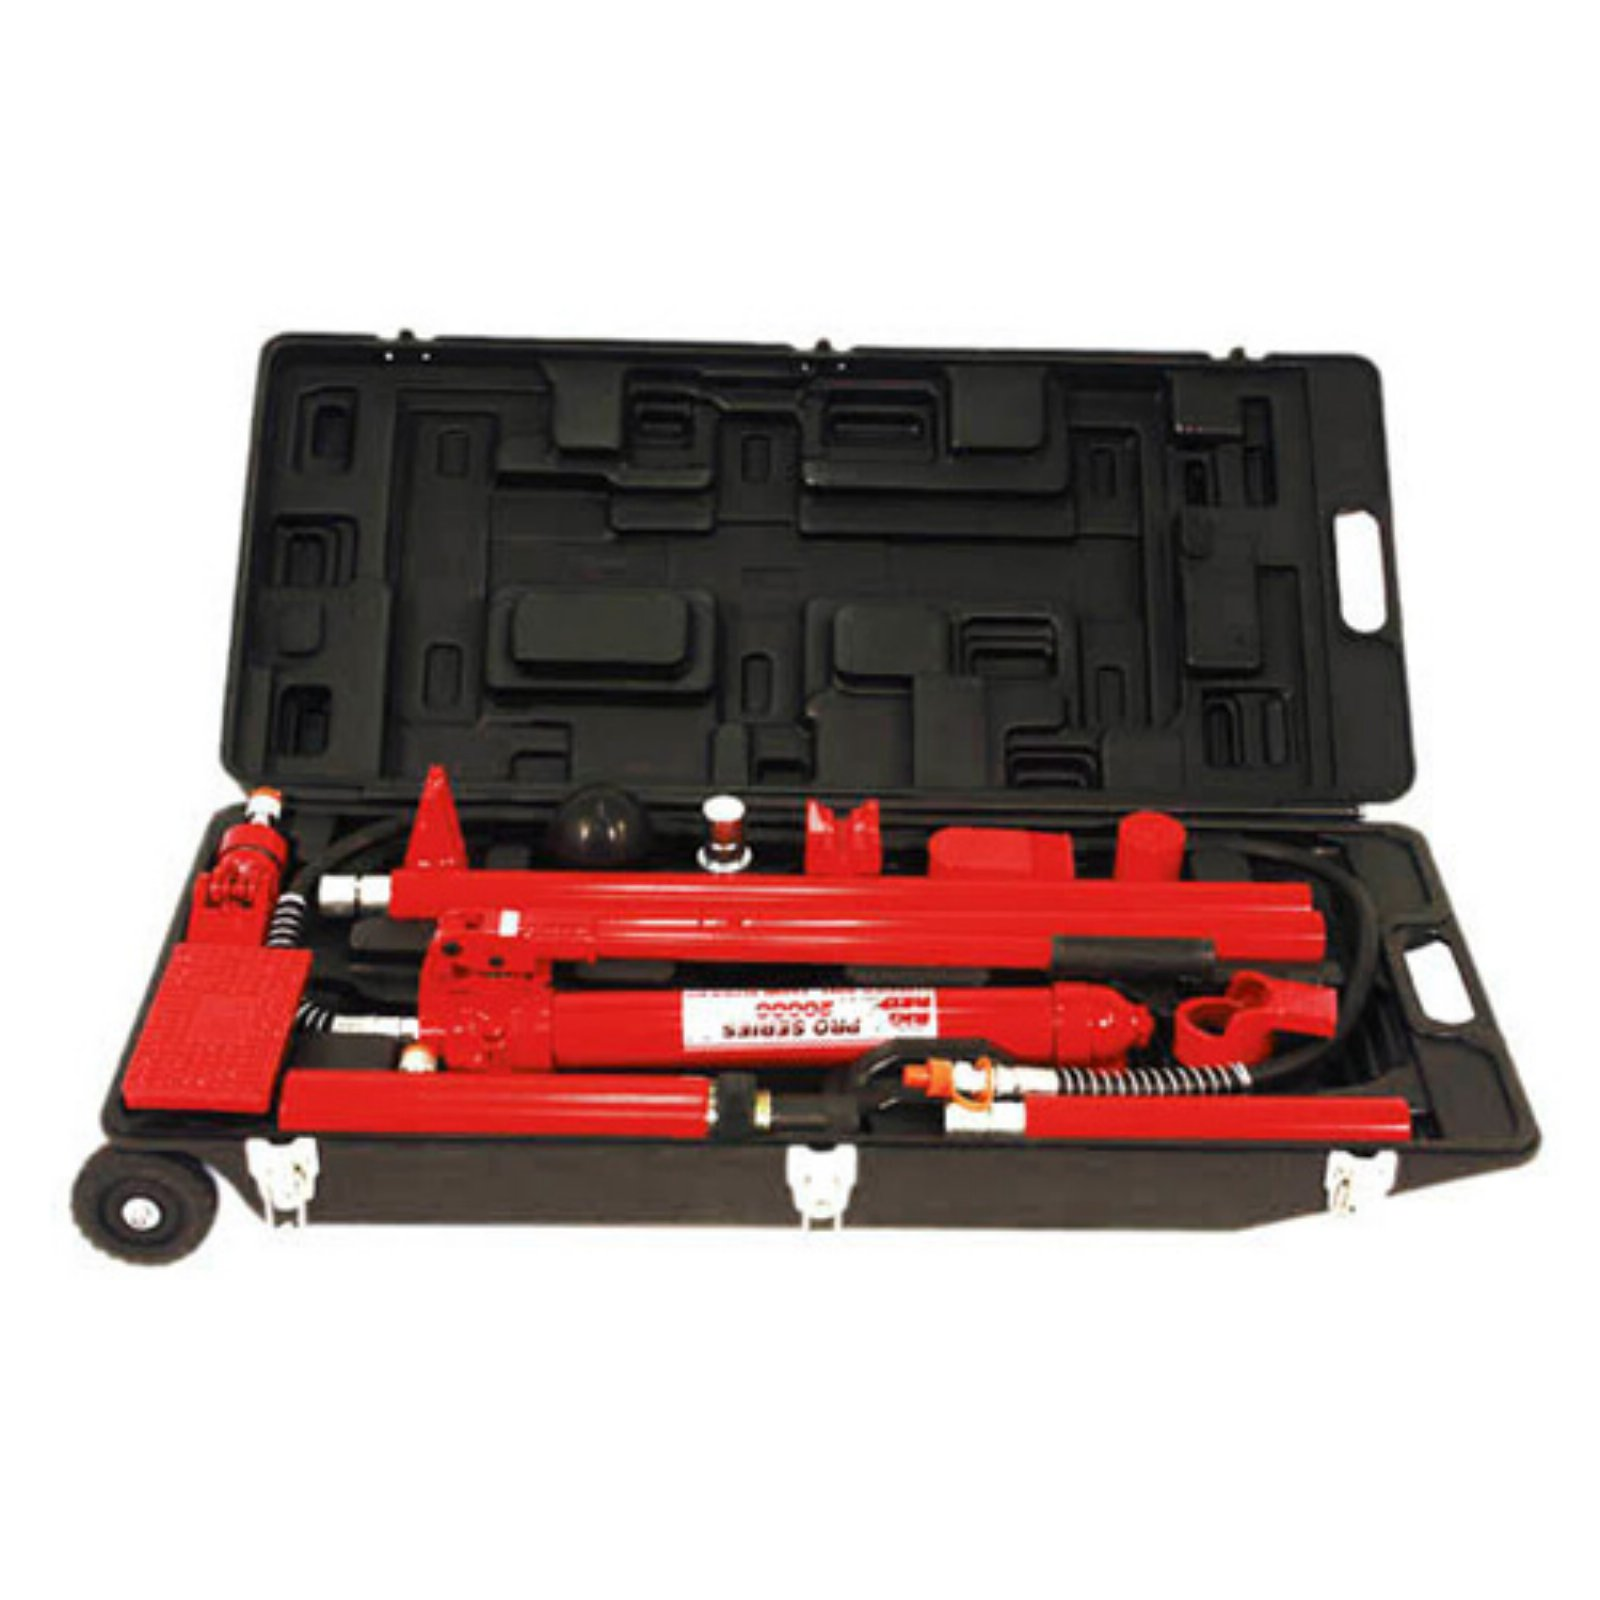 Torin Big Red T71001 10 Ton Porta-Power Kit with Case